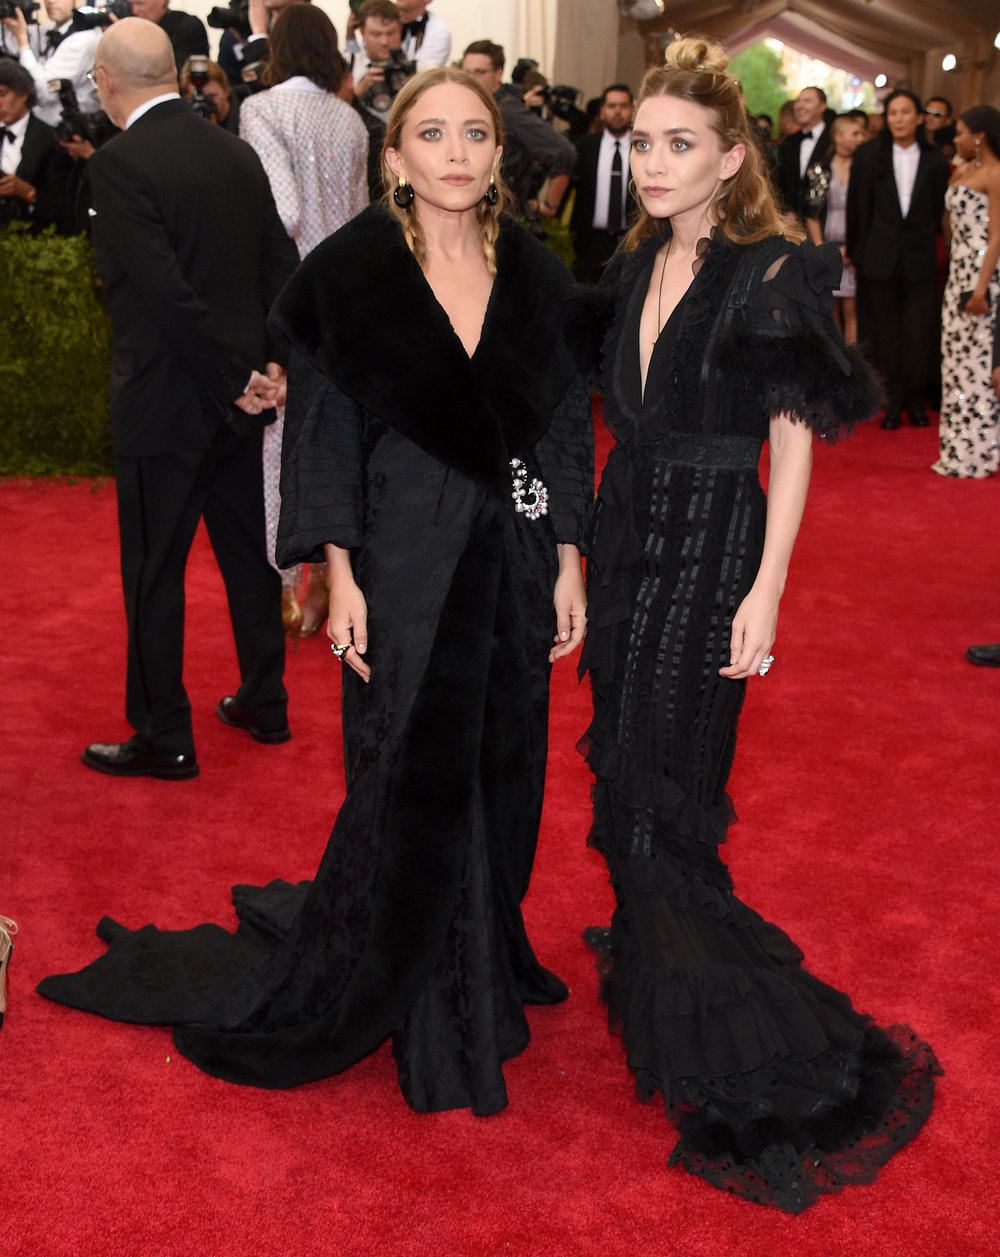 2015- Both wearing vintage John Galliano for Dior